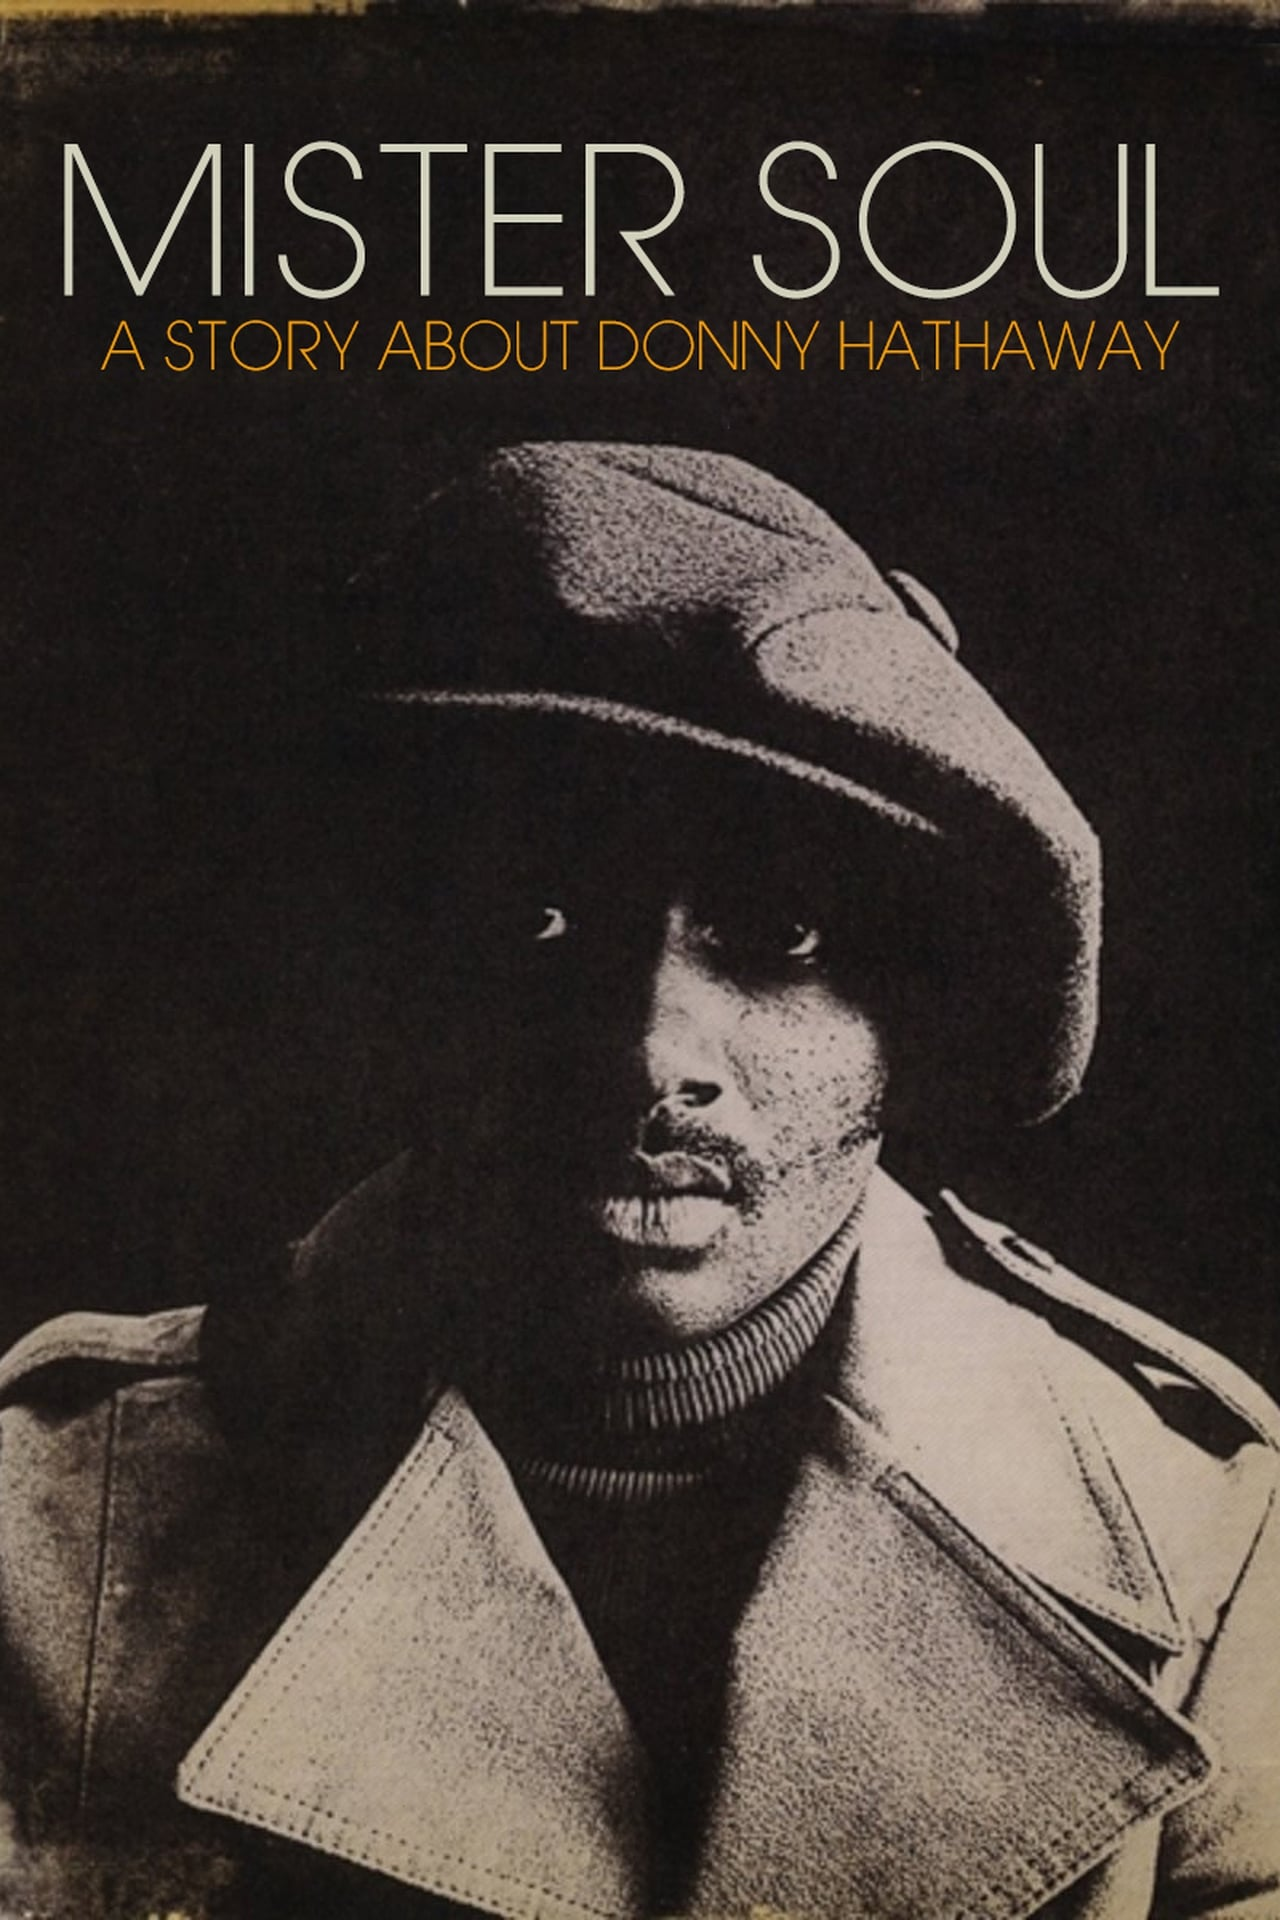 Mister Soul: a story about Donny Hathaway